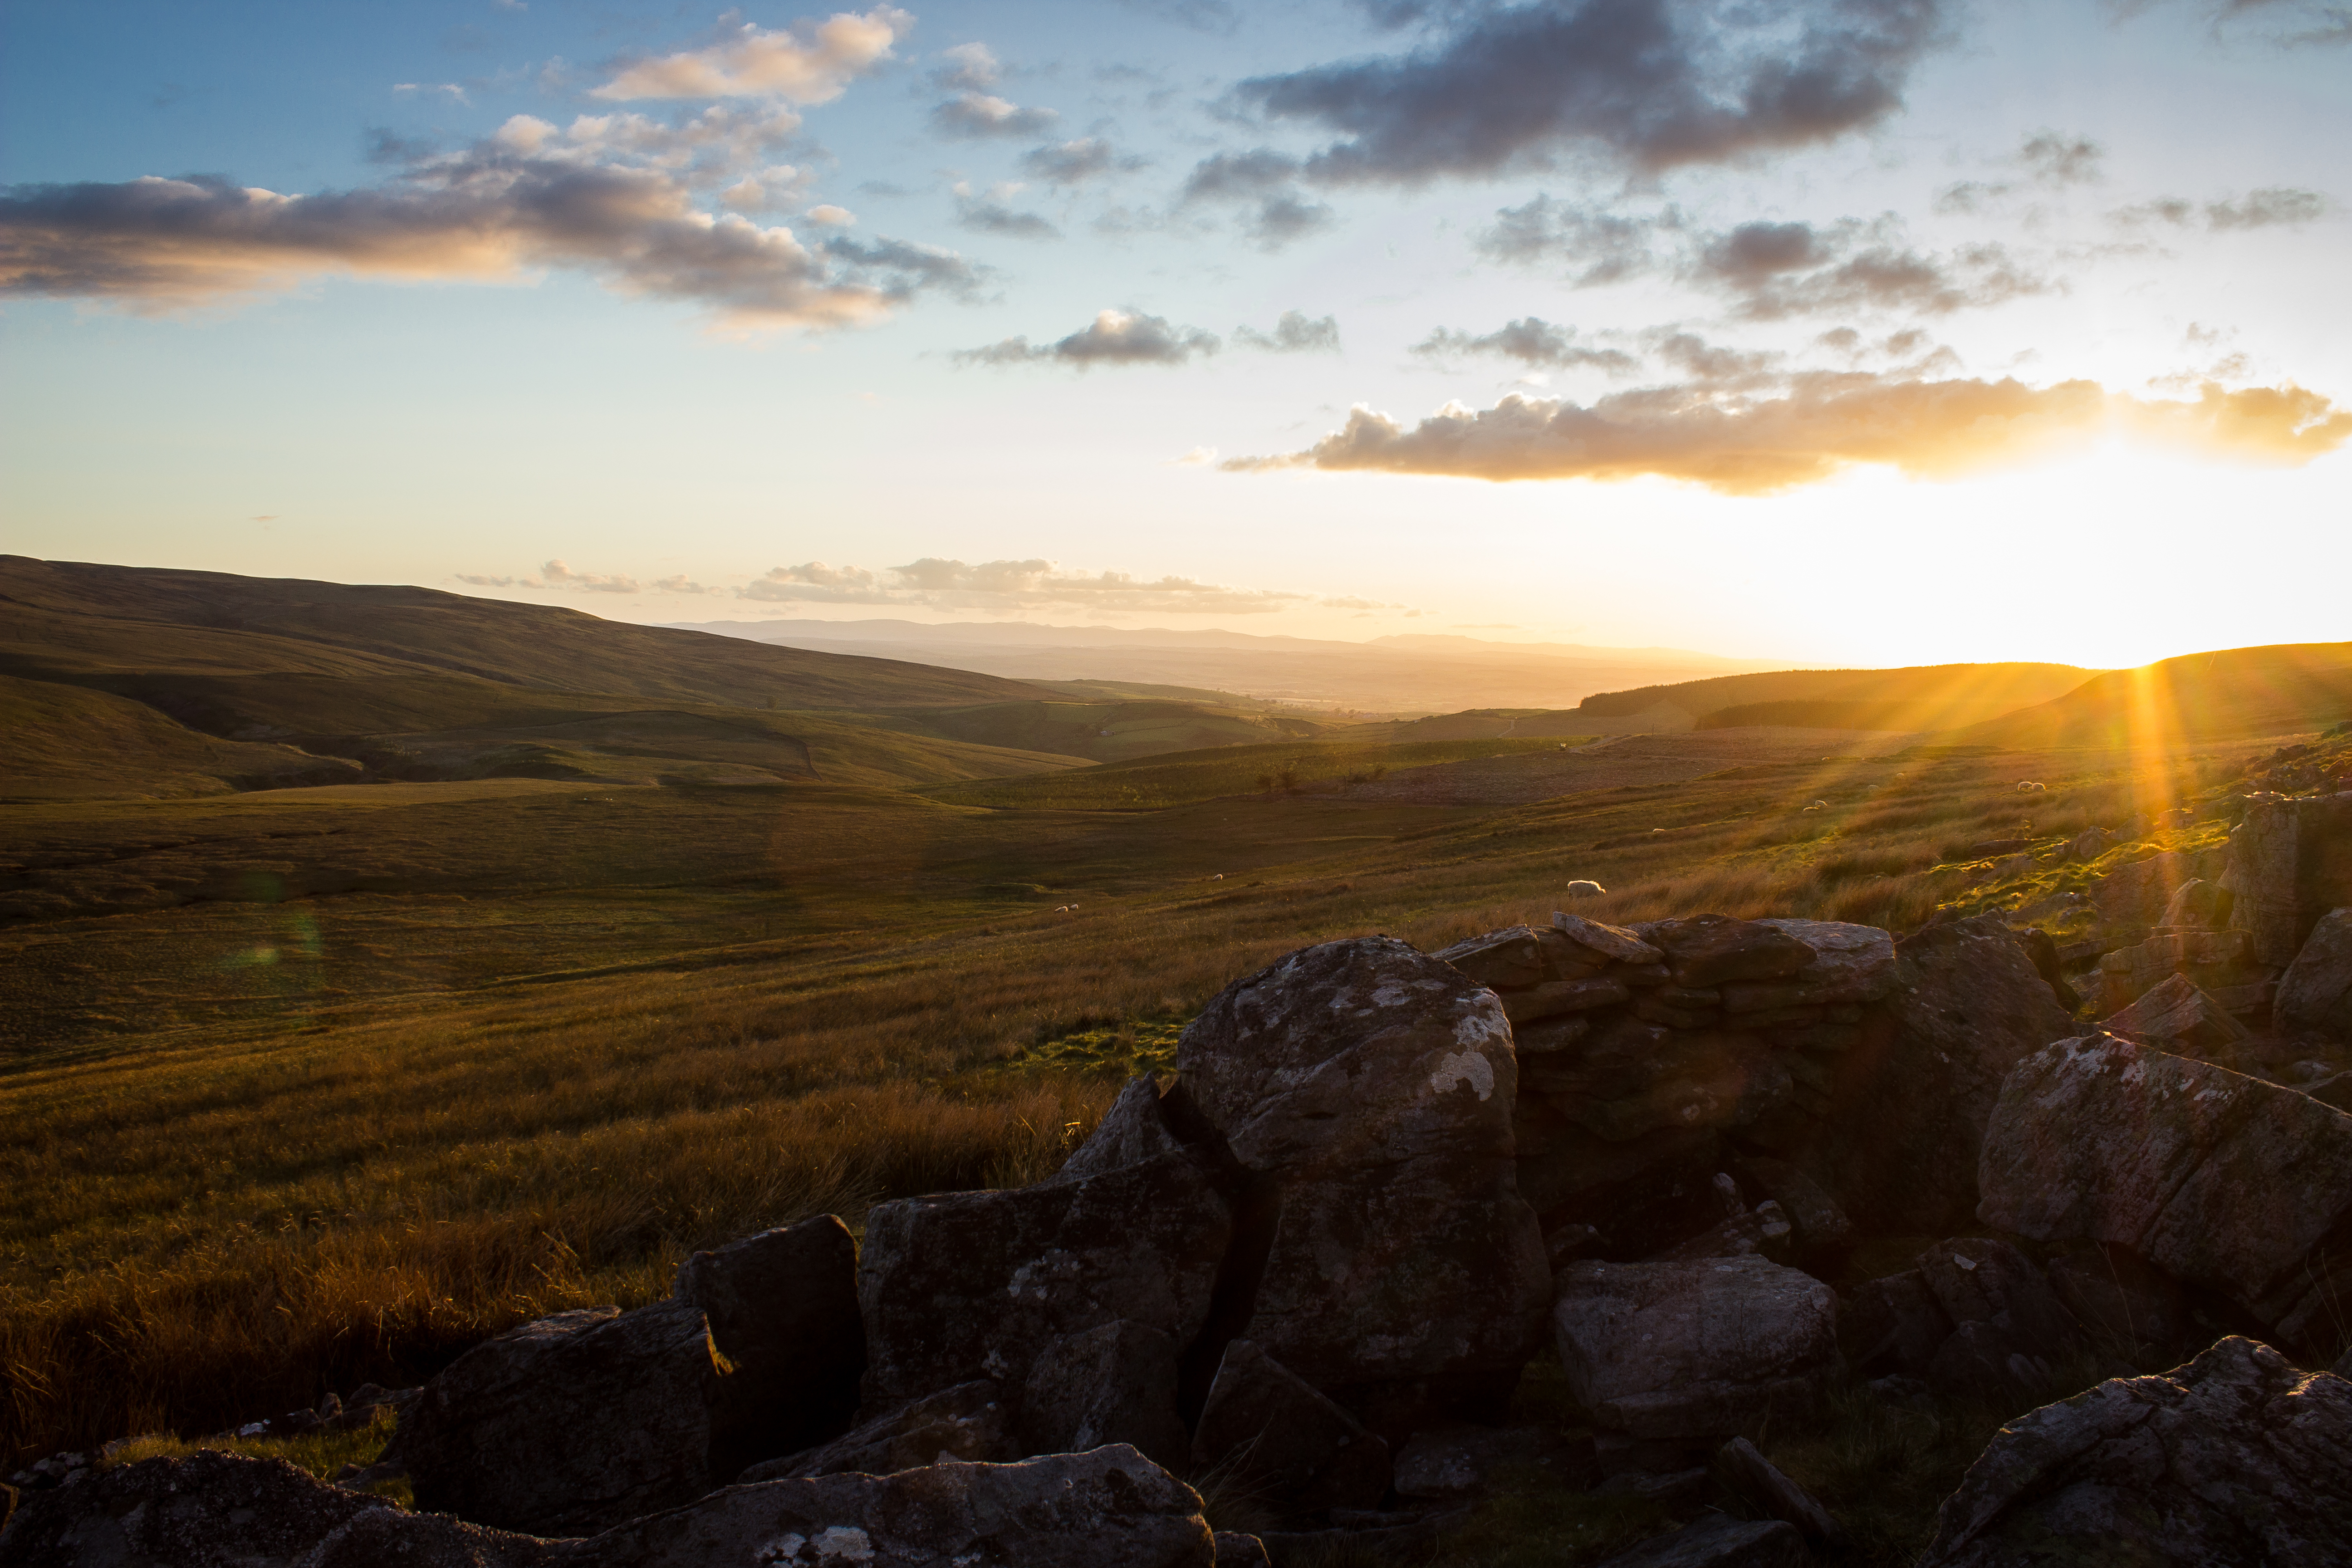 Sunset, somewhere in the Dales